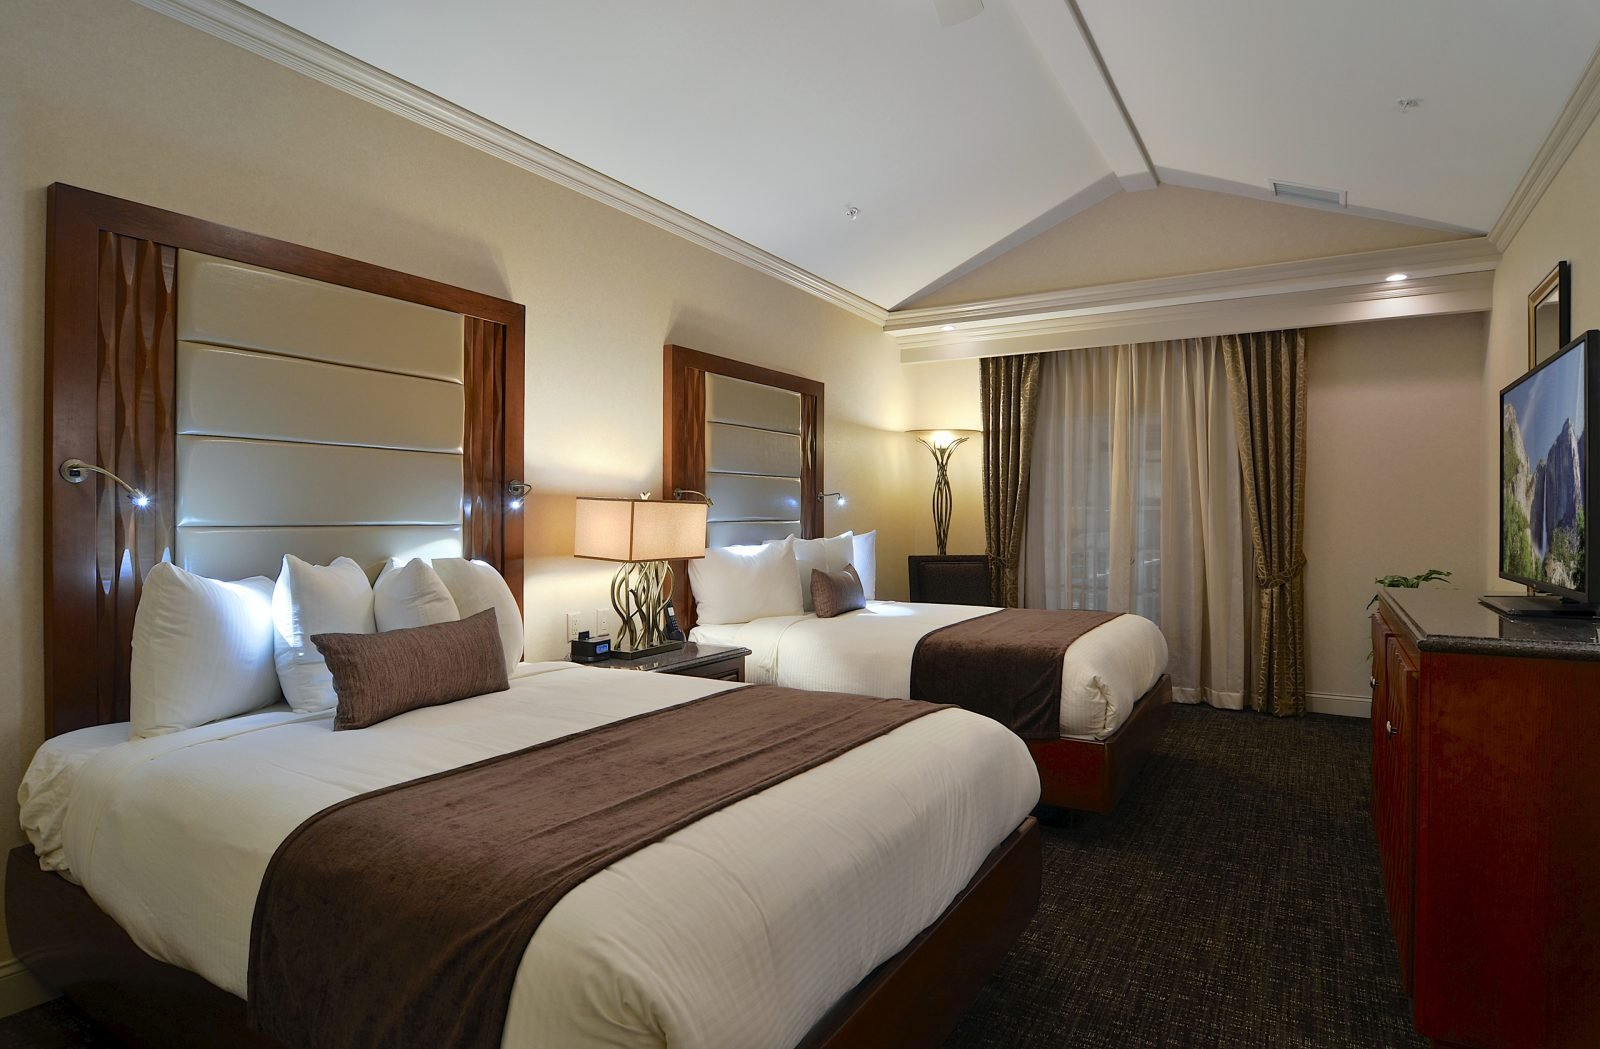 Best Hotel Rooms With Two Bedrooms 2 Bedroom Suites In With Pictures